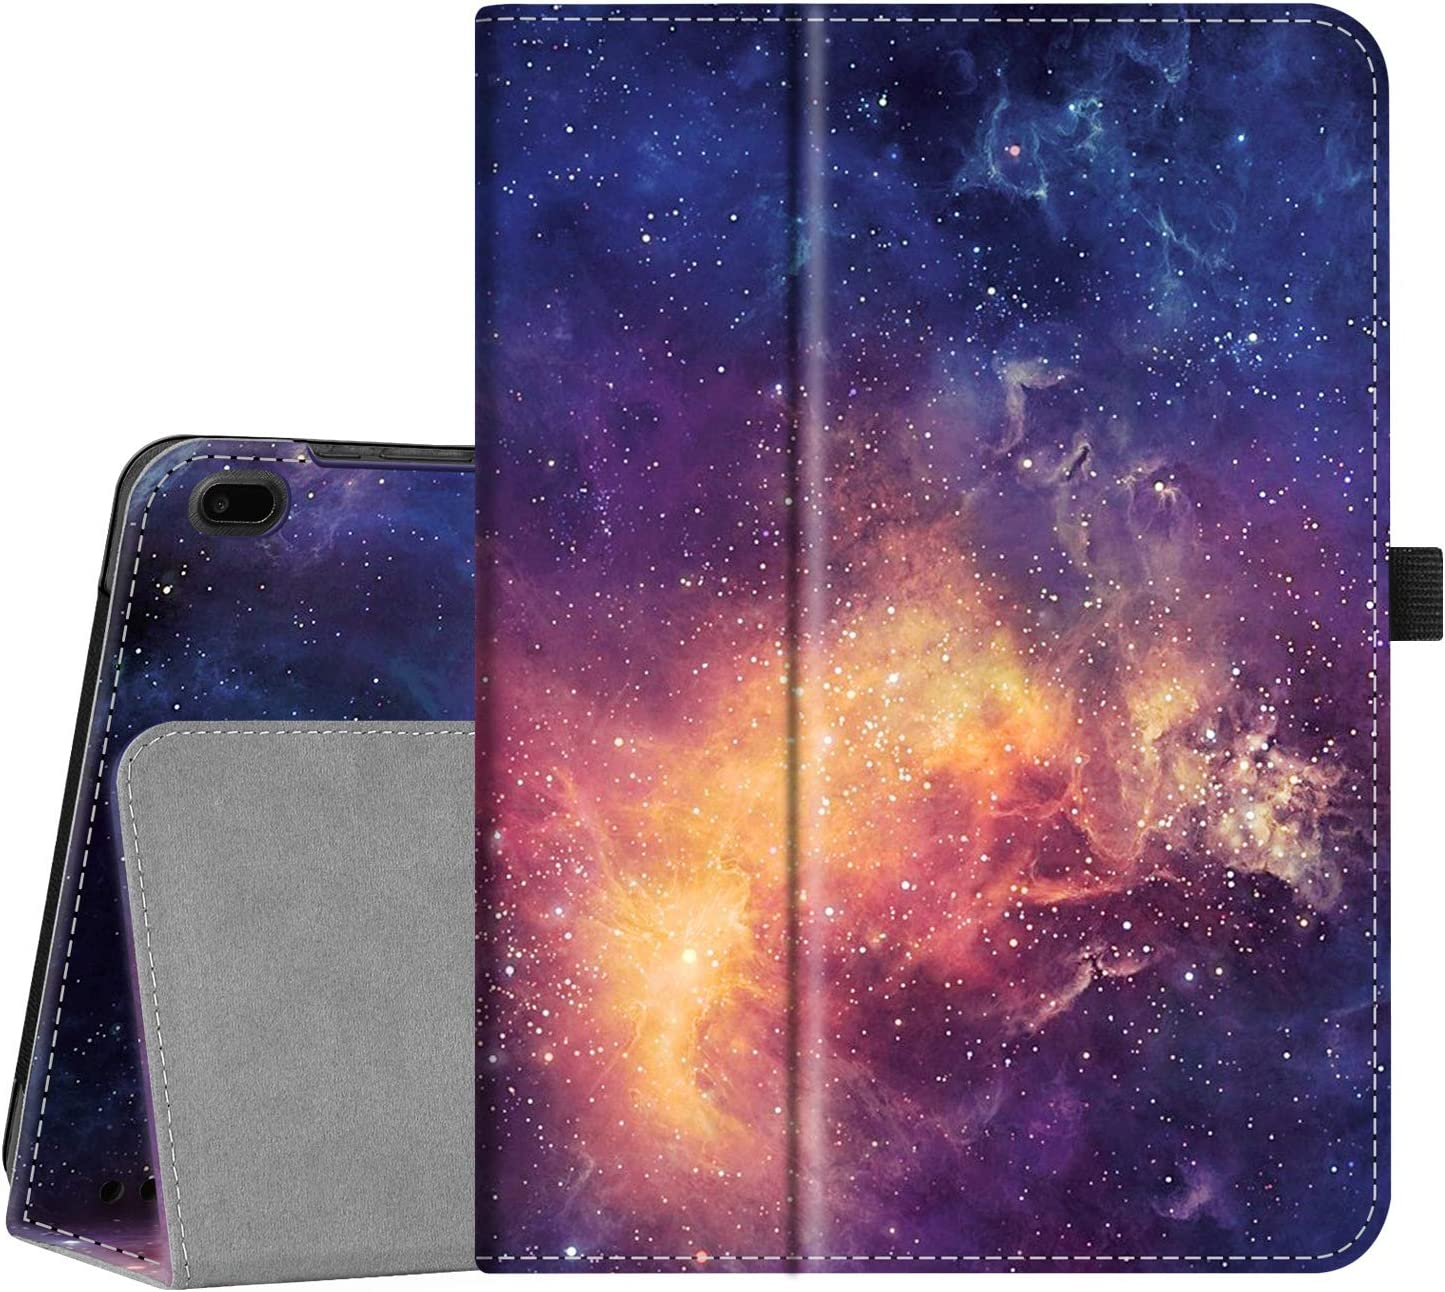 Fintie Case for Onn 10.1 inch Tablet, Premium Vegan Leather Folio Protective Stand Cover with Pencil Holder (Galaxy)